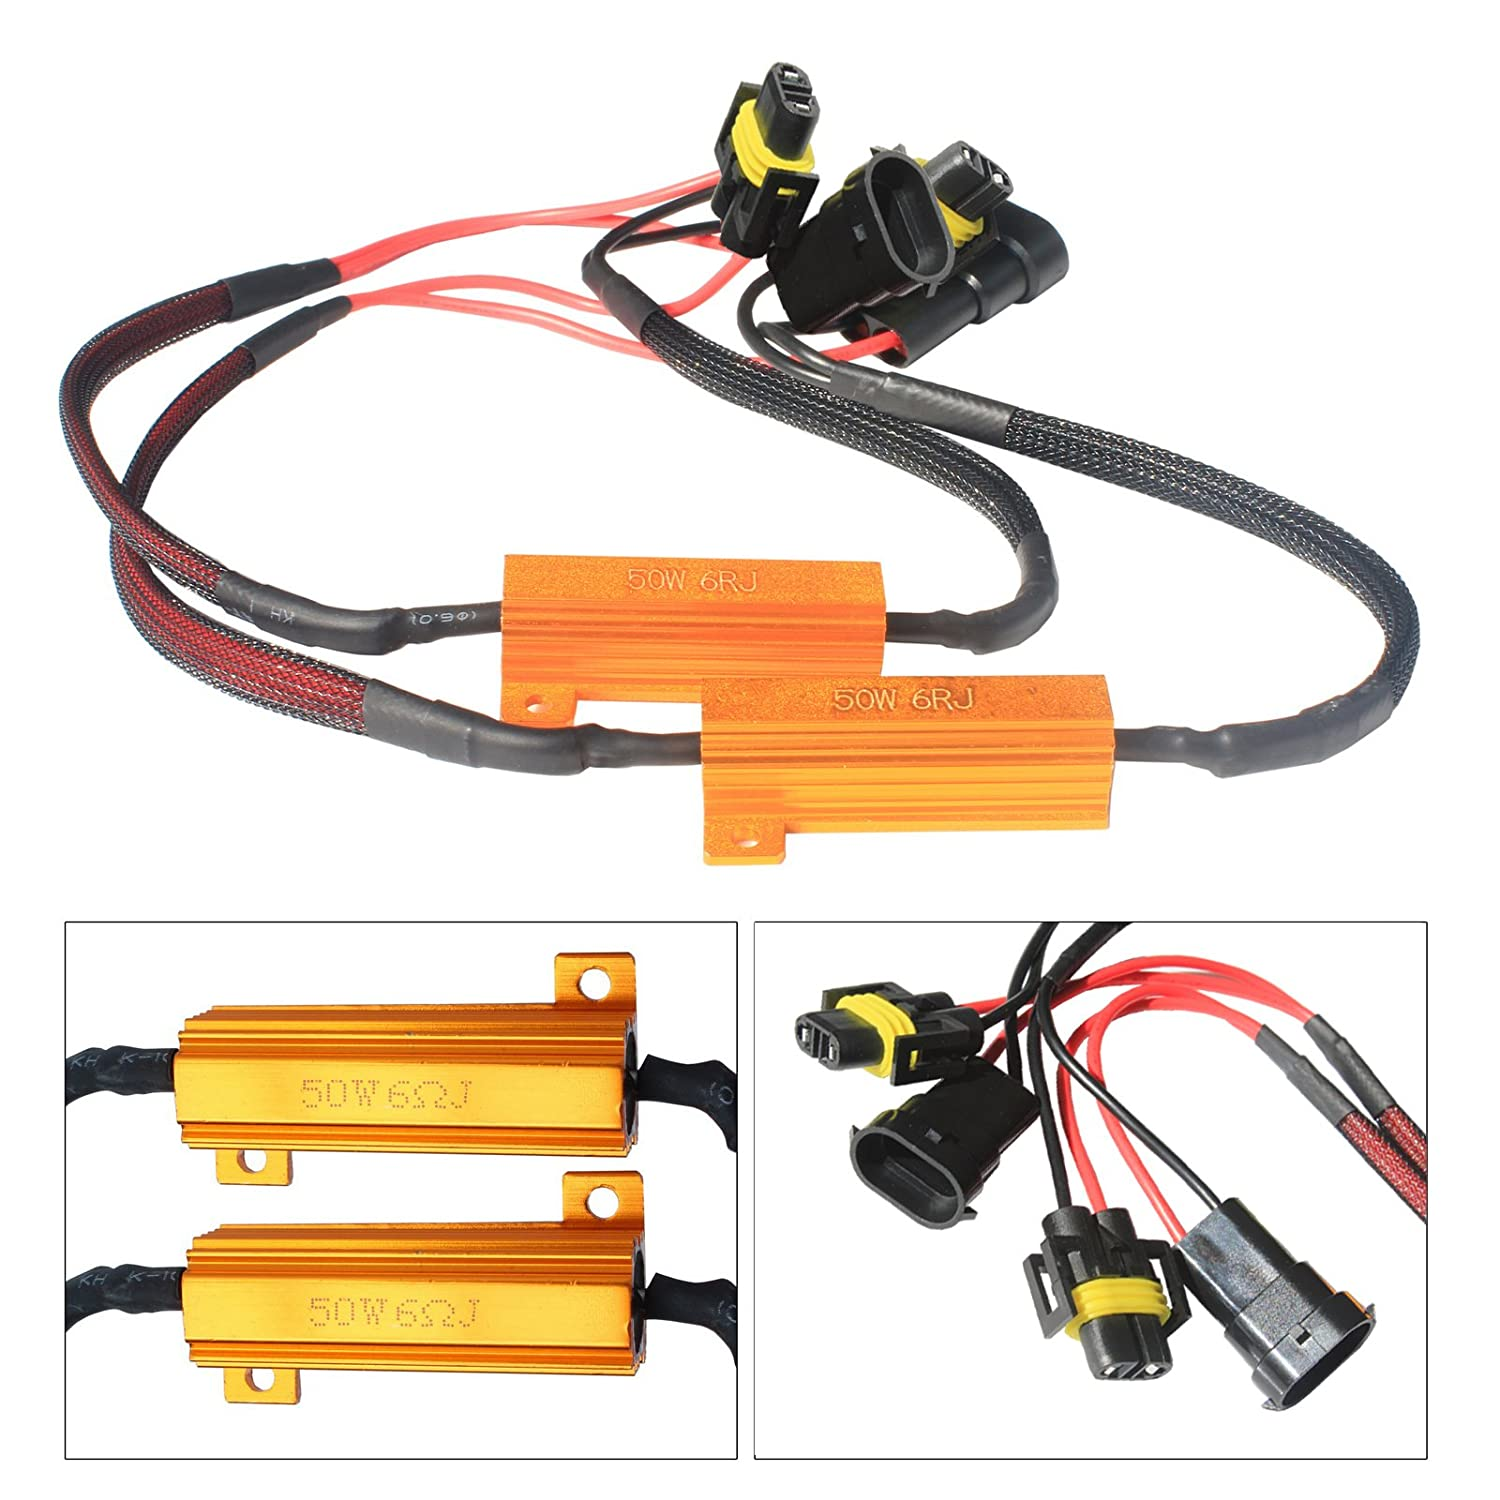 H11 Led Load Resistor Wiring Harness - Wiring Diagram Show H Wire Harness on 3 wire wiring, 3 wire adapter, 3 wire coil, 3 wire alternator, 3 wire regulator, 3 wire lead, 3 wire power, 3 wire fan, 3 wire solenoid, 3 wire cable, 3 wire antenna, 3 wire module, 3 wire control, 3 wire sensor, 3 wire lamp, 3 wire switch, 3 wire black, 3 wire motor, 3 wire wheels, 3 wire light,